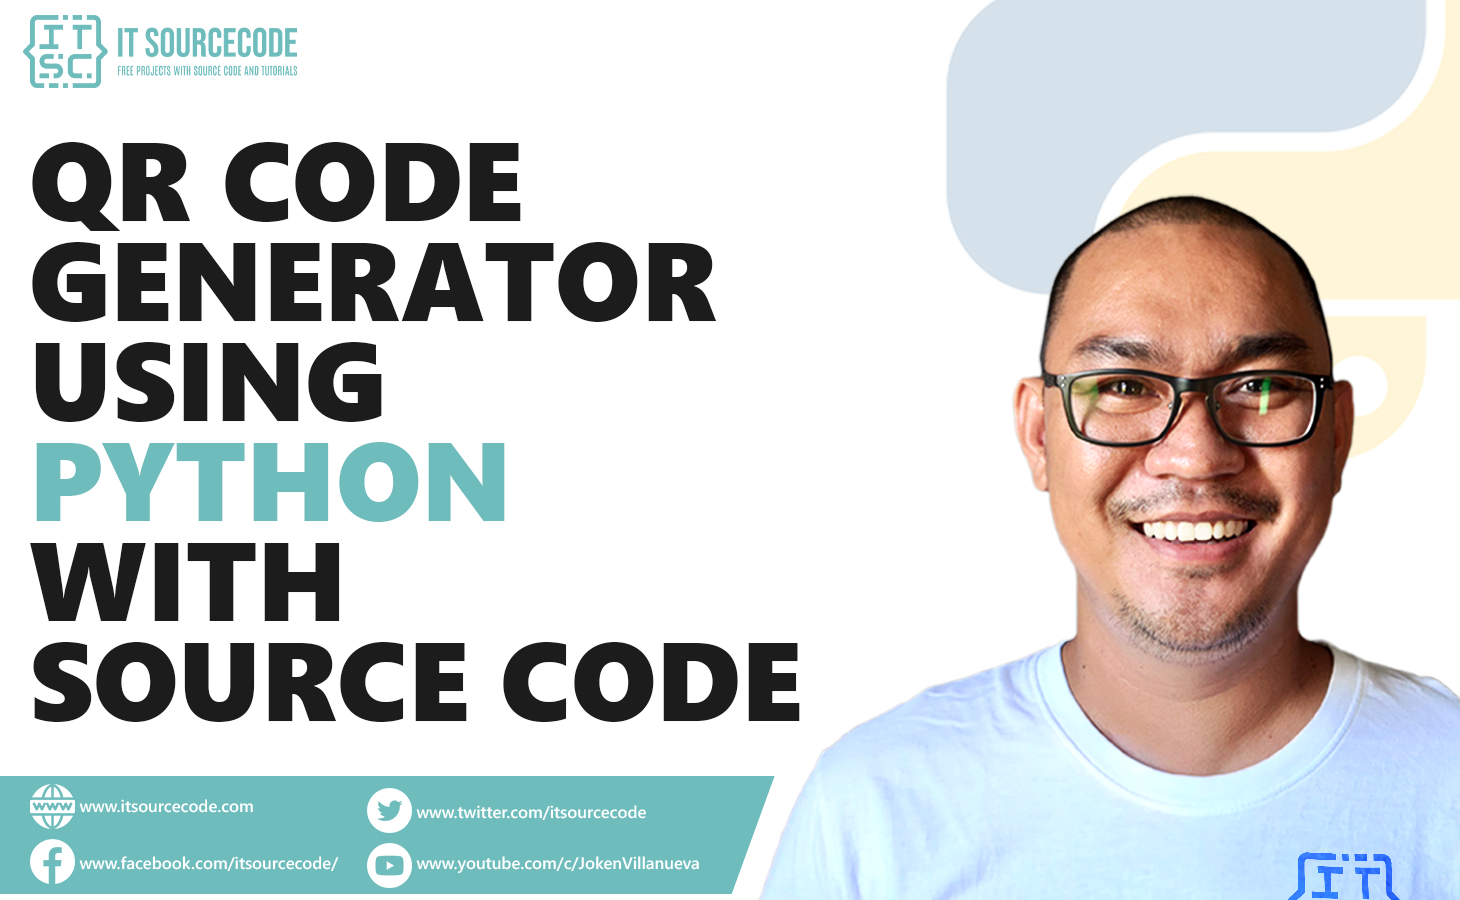 qr code generator in python with source code